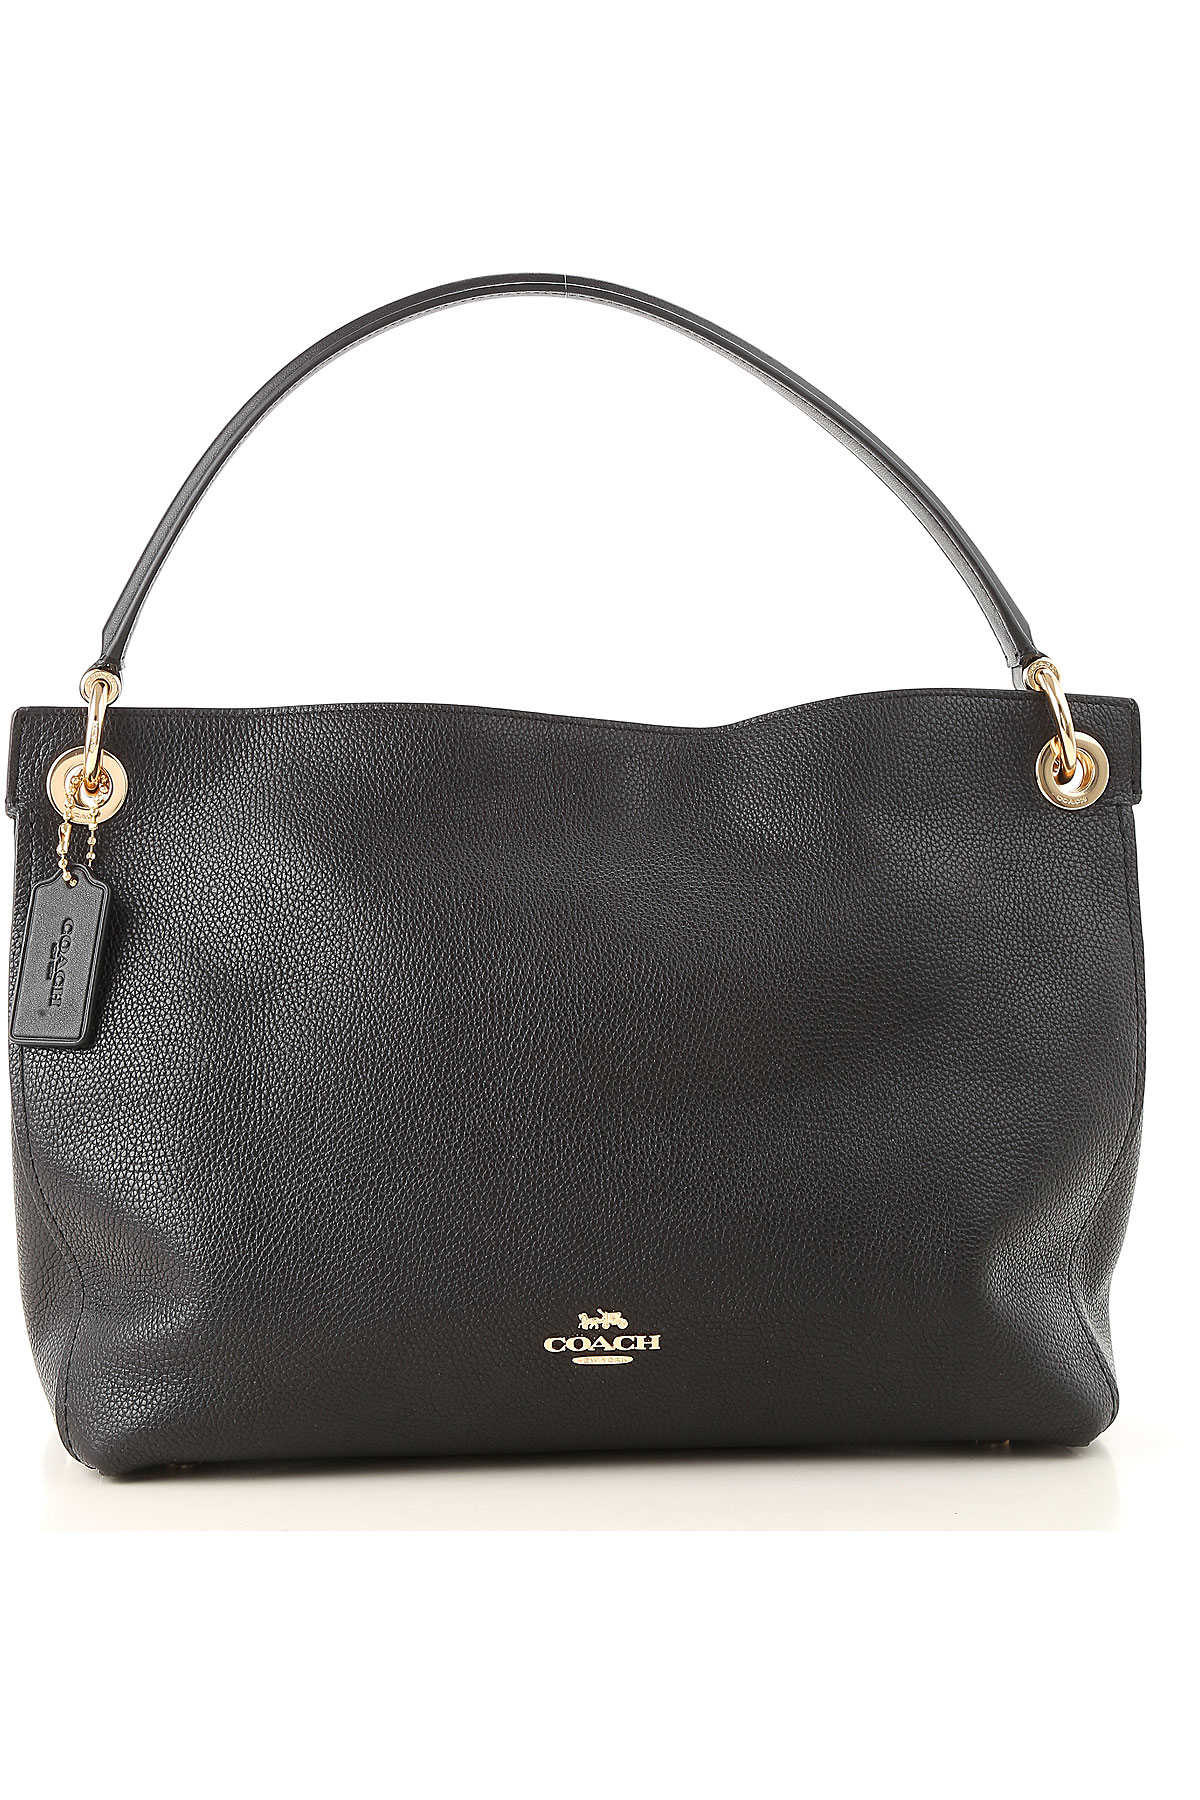 Coach Tote Bag On Sale Black Leather 2019 Raffaello Network Goofash